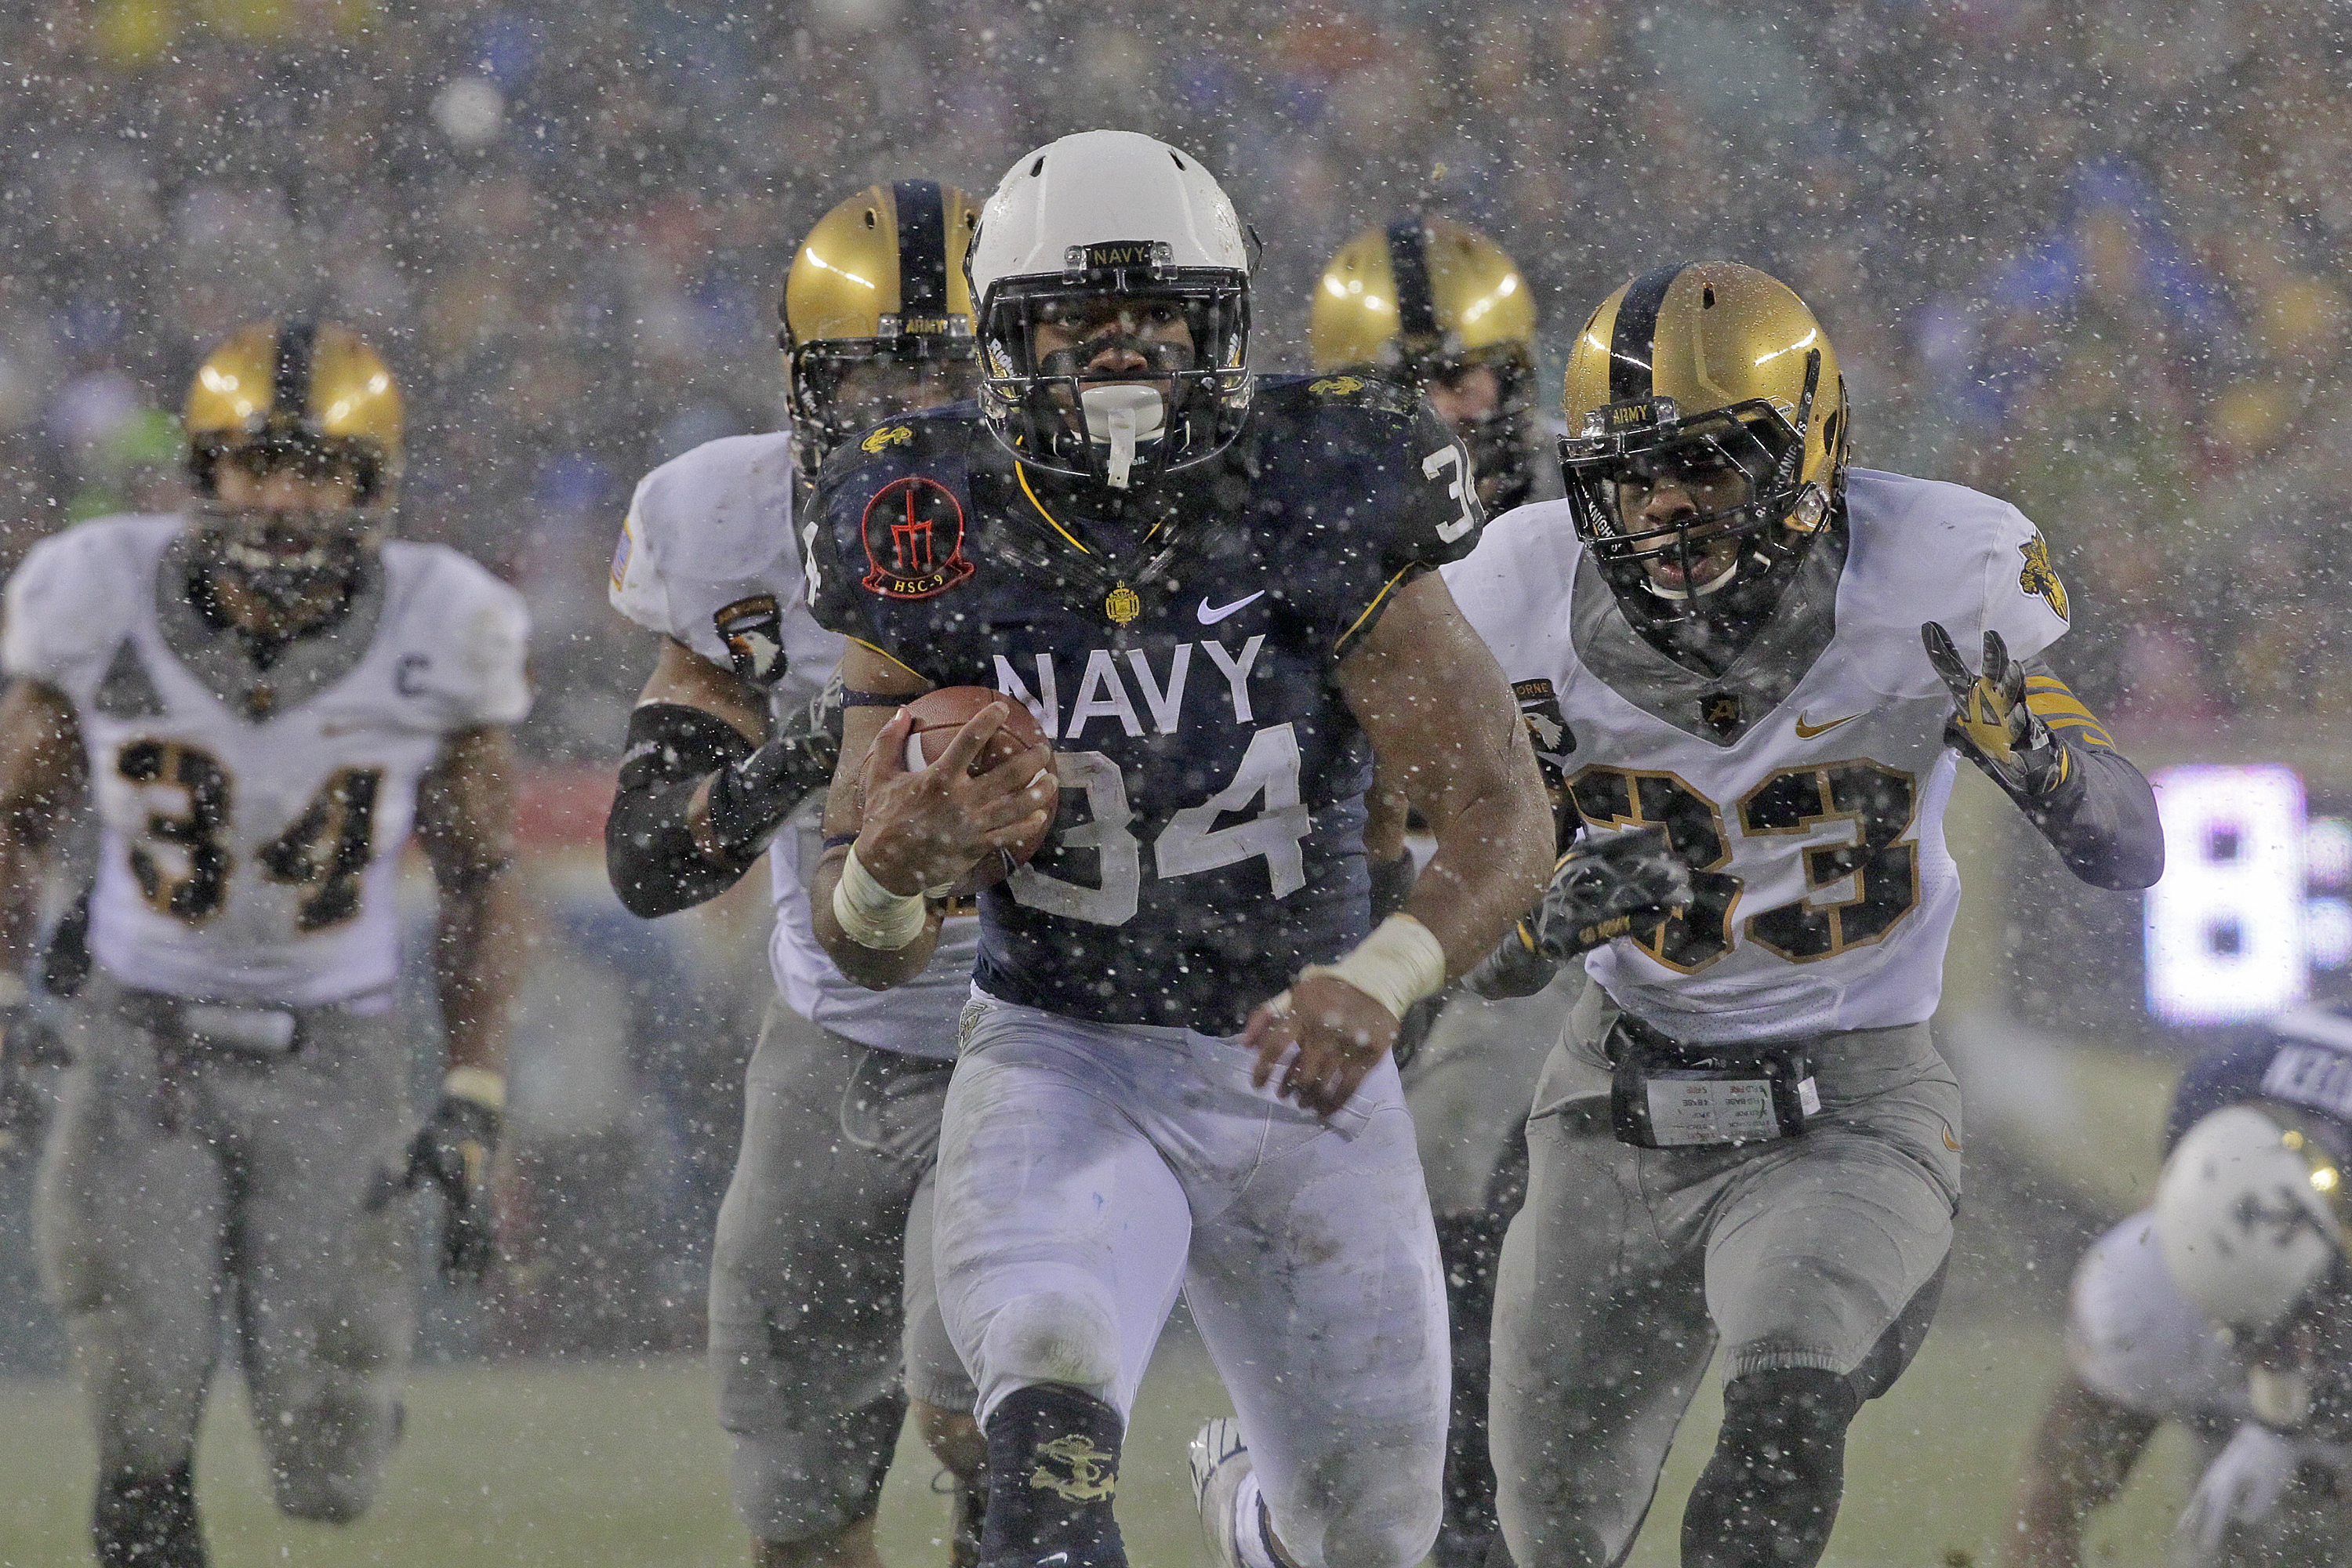 America's Game | Army Wins For Second Year In a Row #ArmyNavyGame